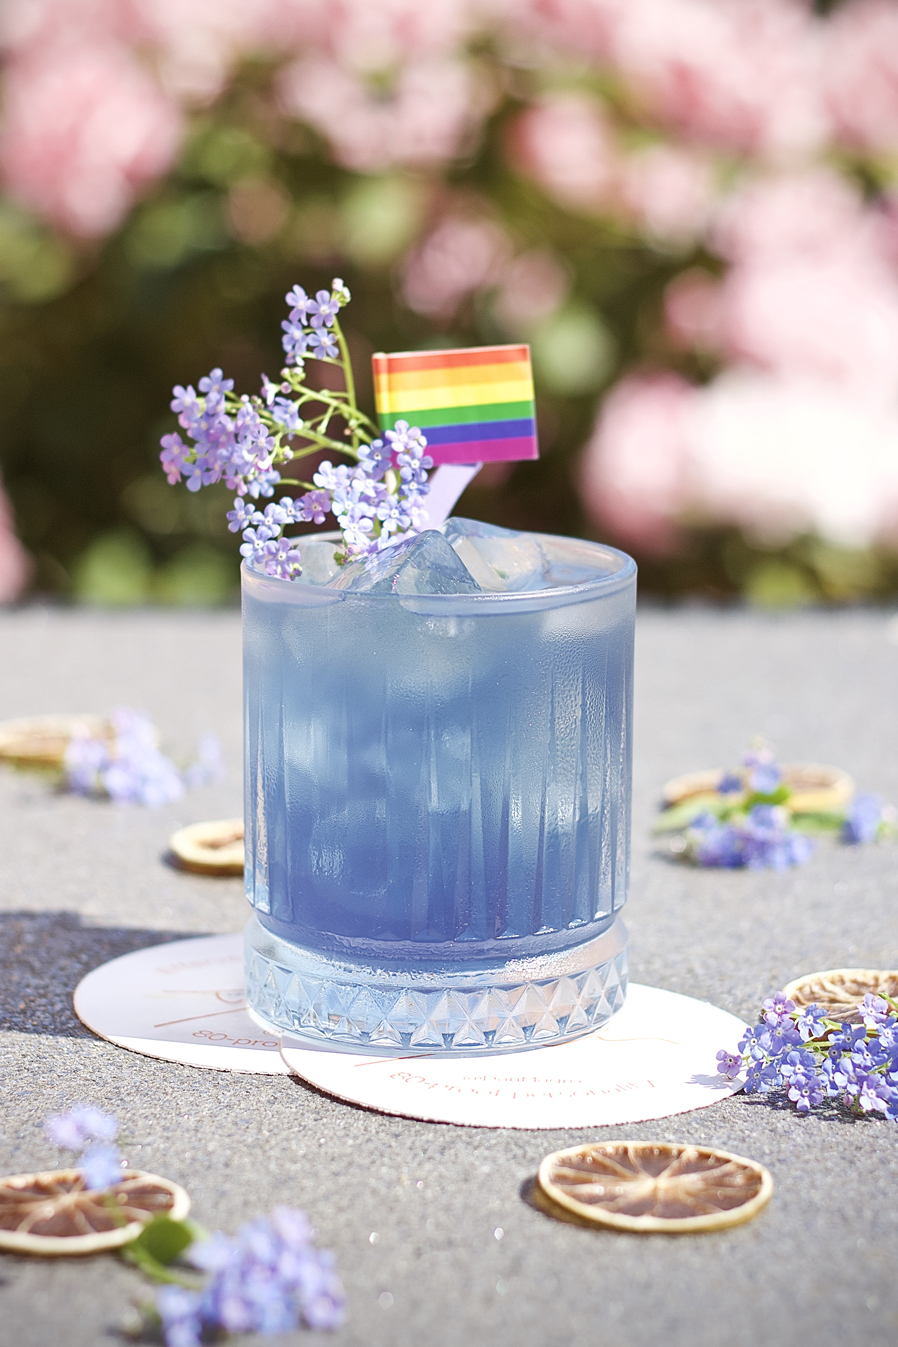 Blue Pride - A perfect pairing for the entire month of July.6 cl Illusionist Dry Gin1.5 cl Violette Liqueur 1.5 cl Lemon juiceTop with your choice of tonic waterGarnish - Proud Flag and season's flowers⠀